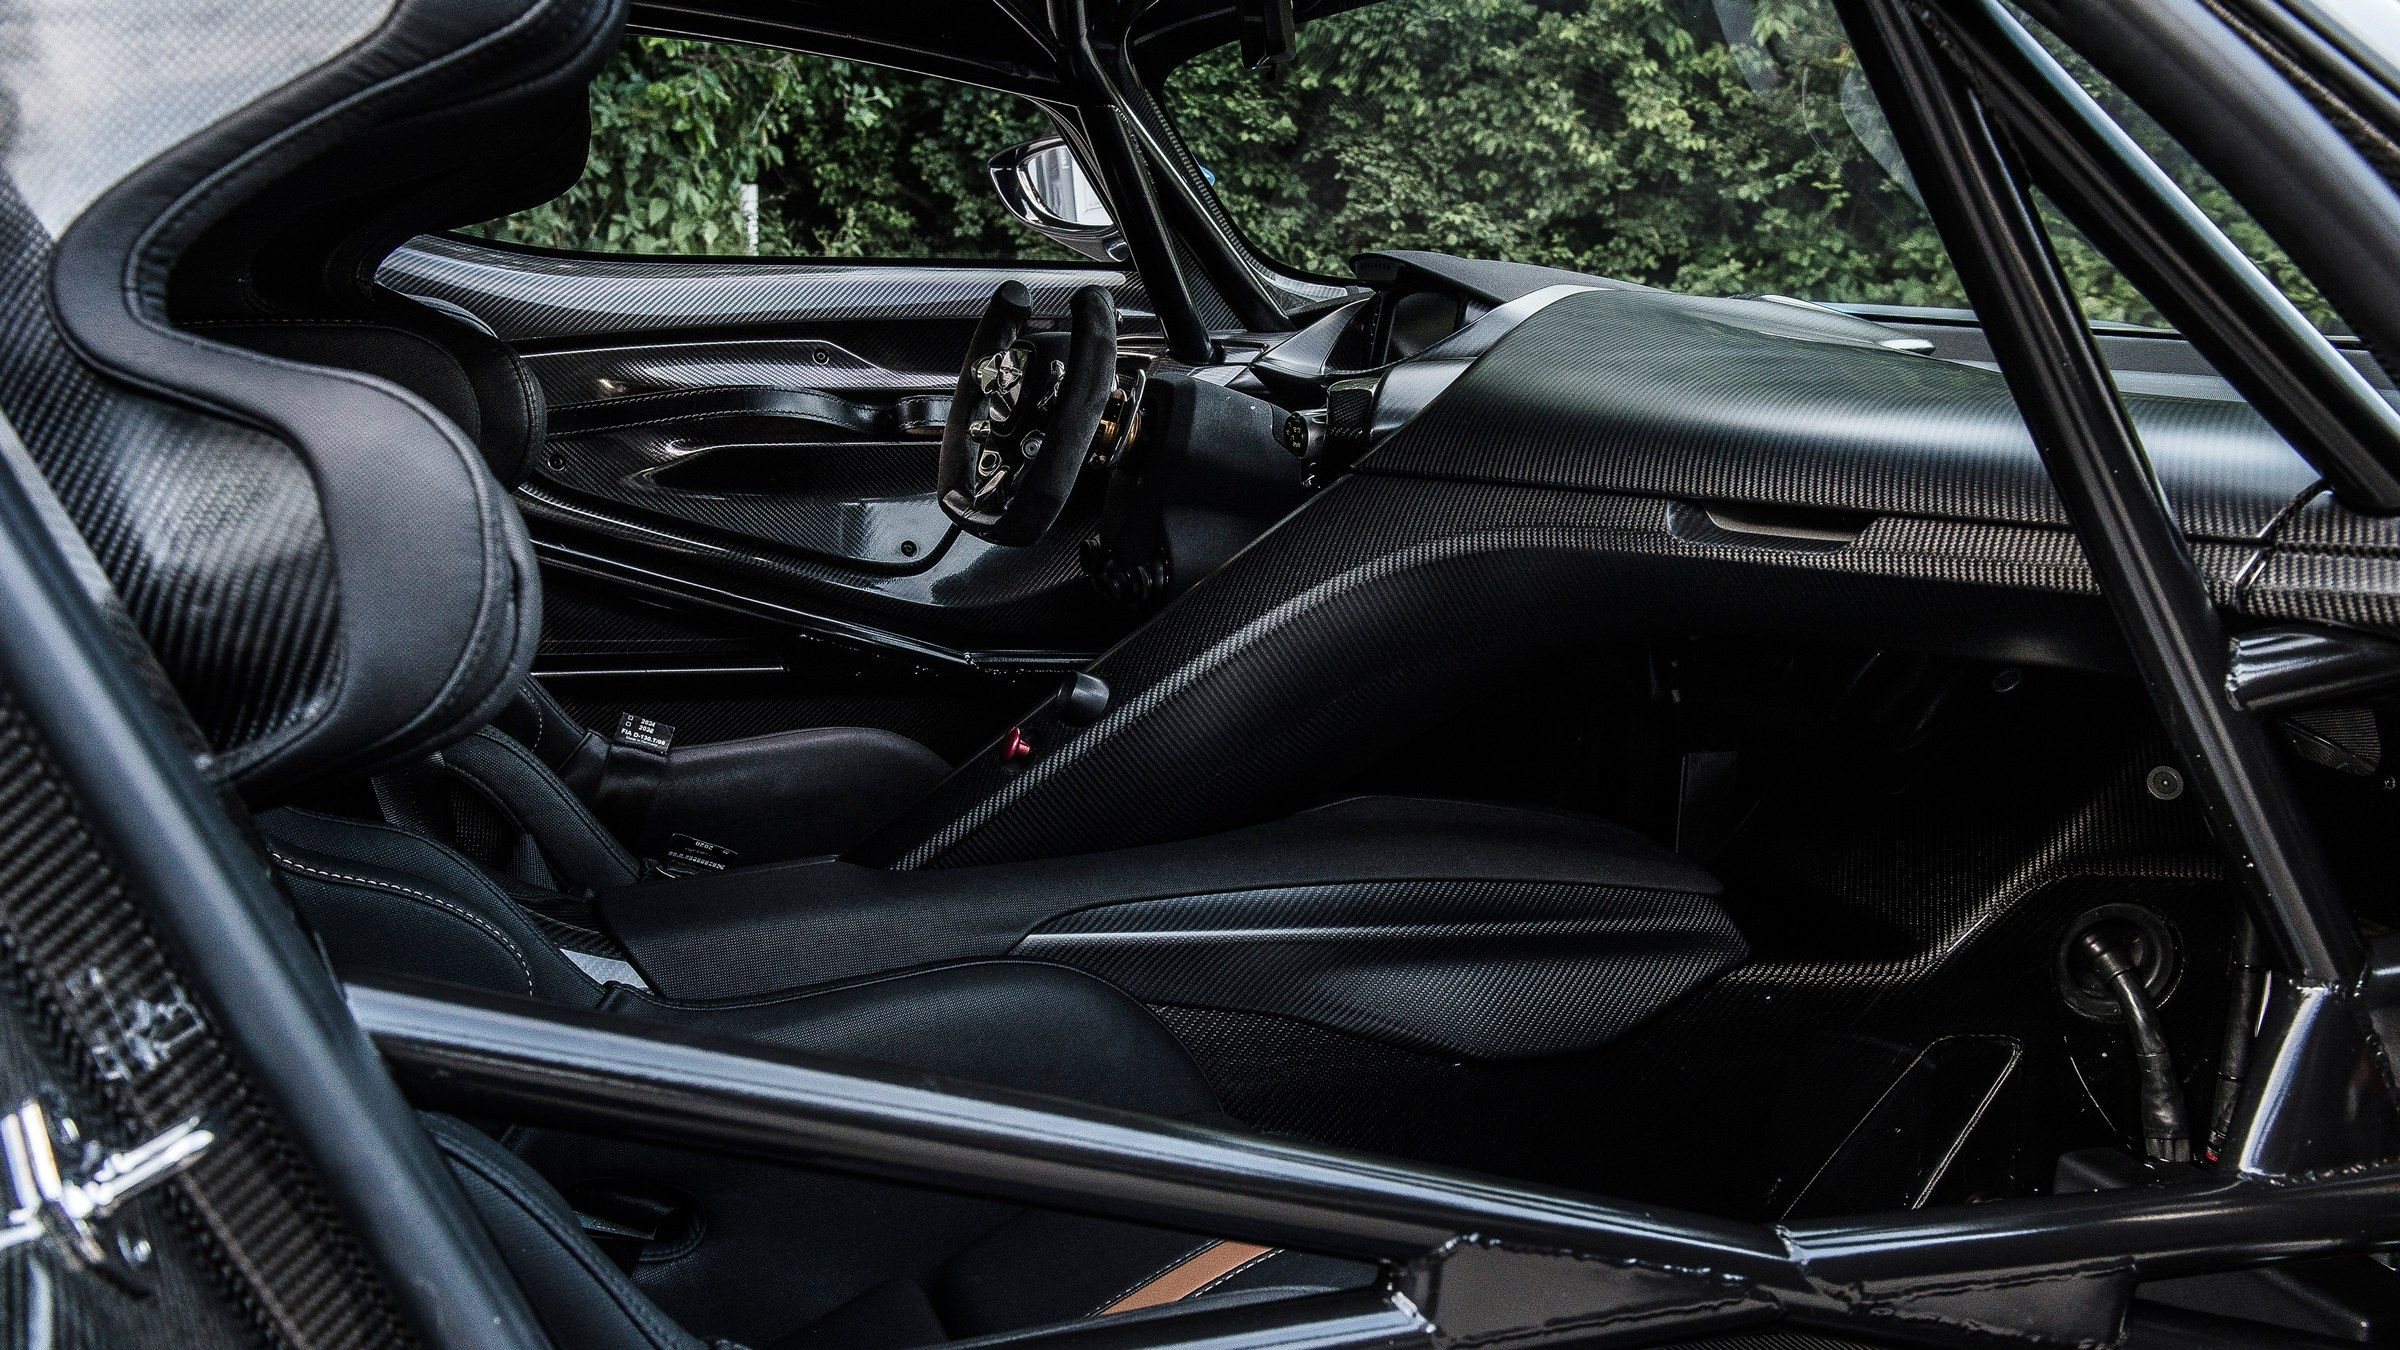 peek inside aston martin's totally bonkers, $2.3m hypercar | aston